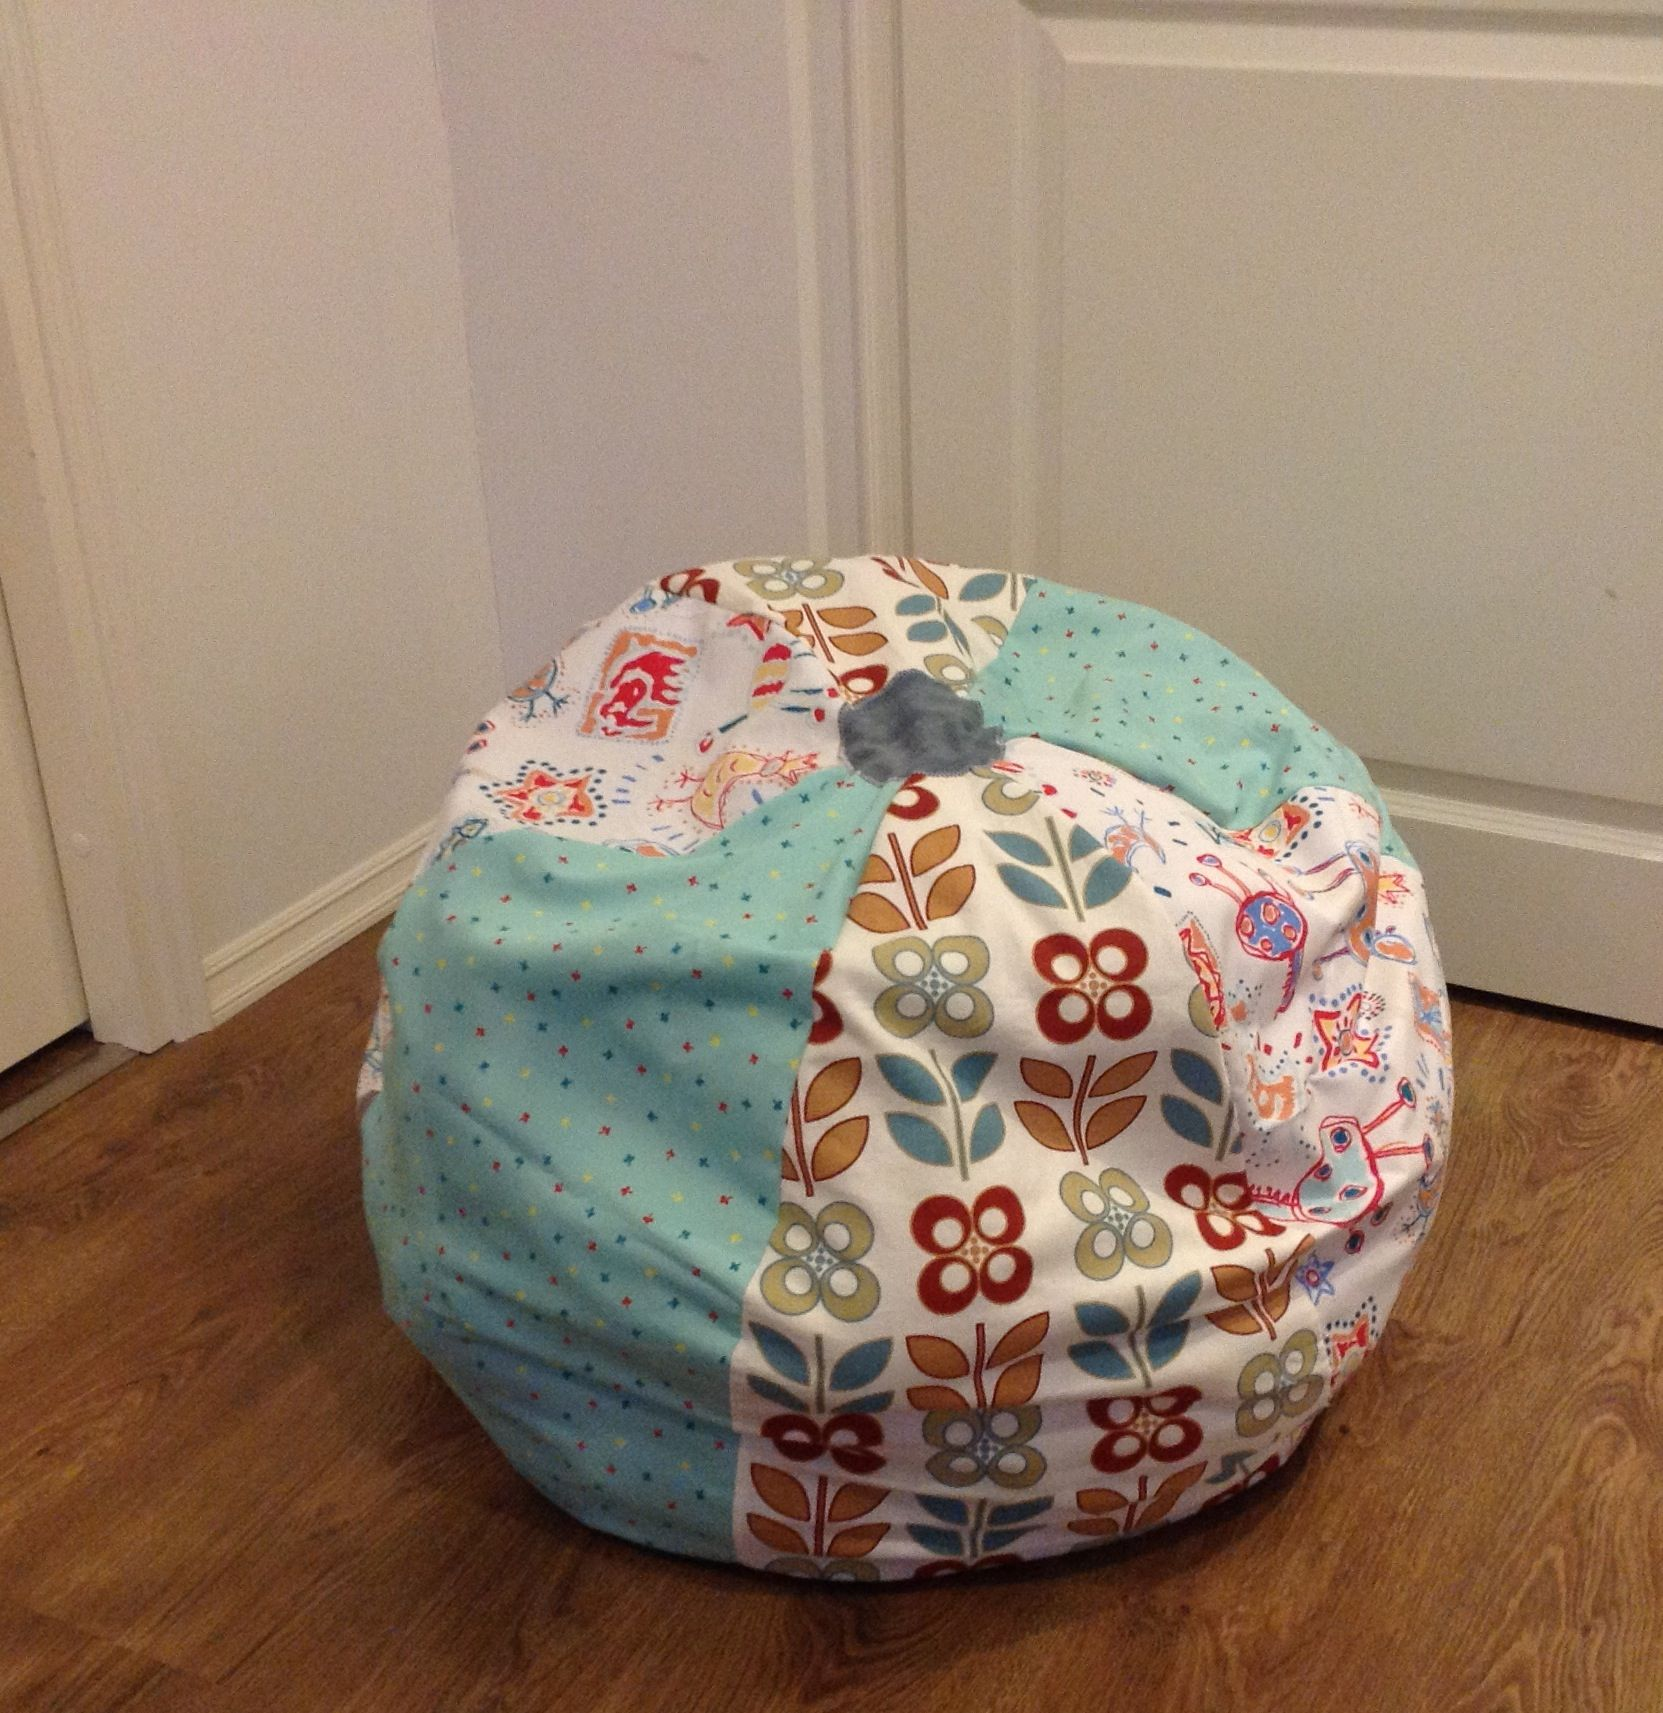 Bean Bags Chair Diy Stuffed Animal Storage With A Zipper E G Bean Bag